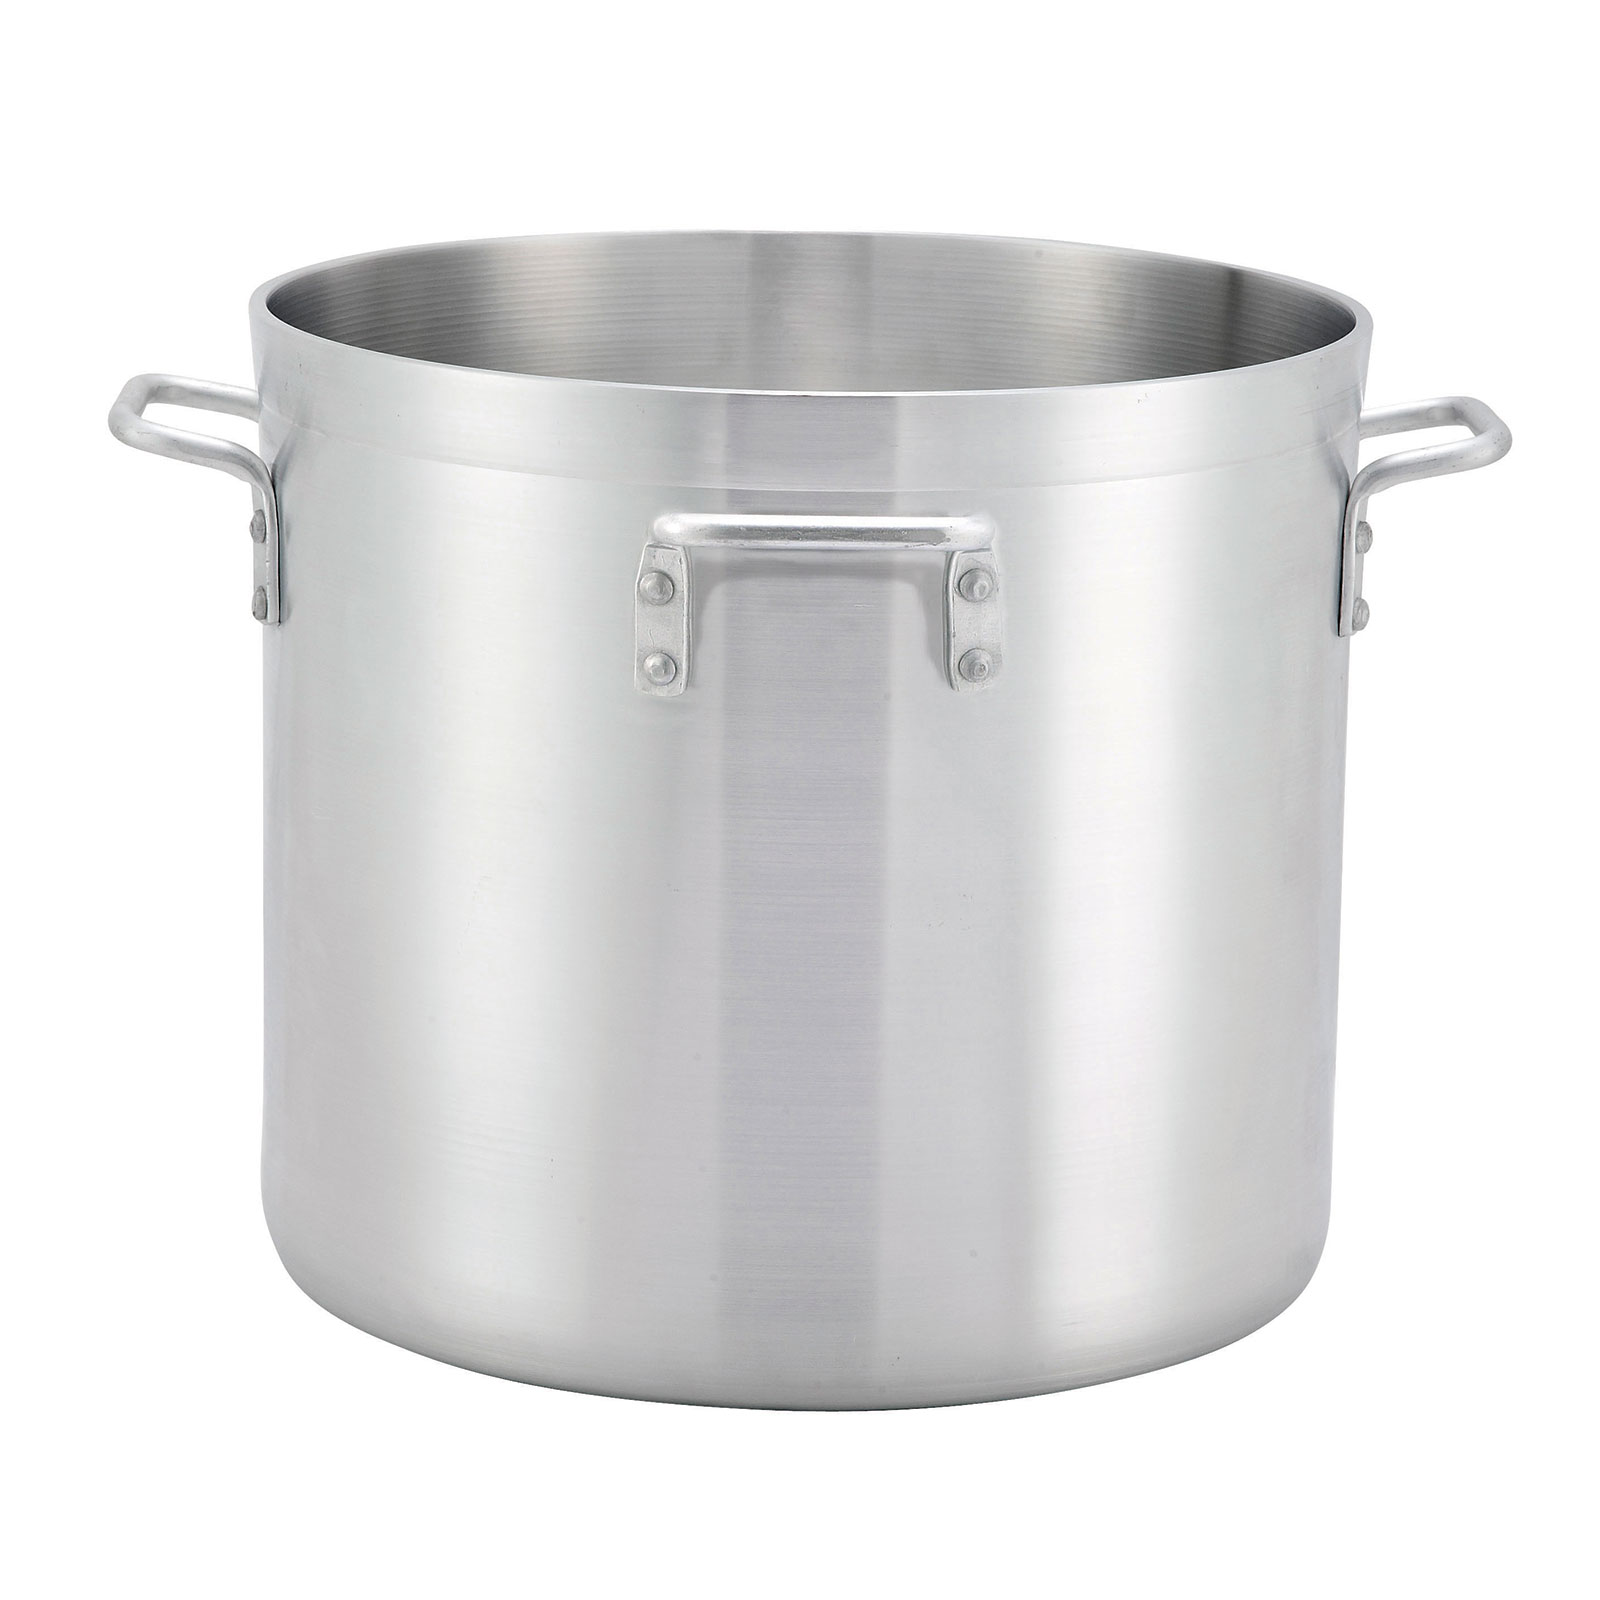 Winco ALHP-140H stock pot